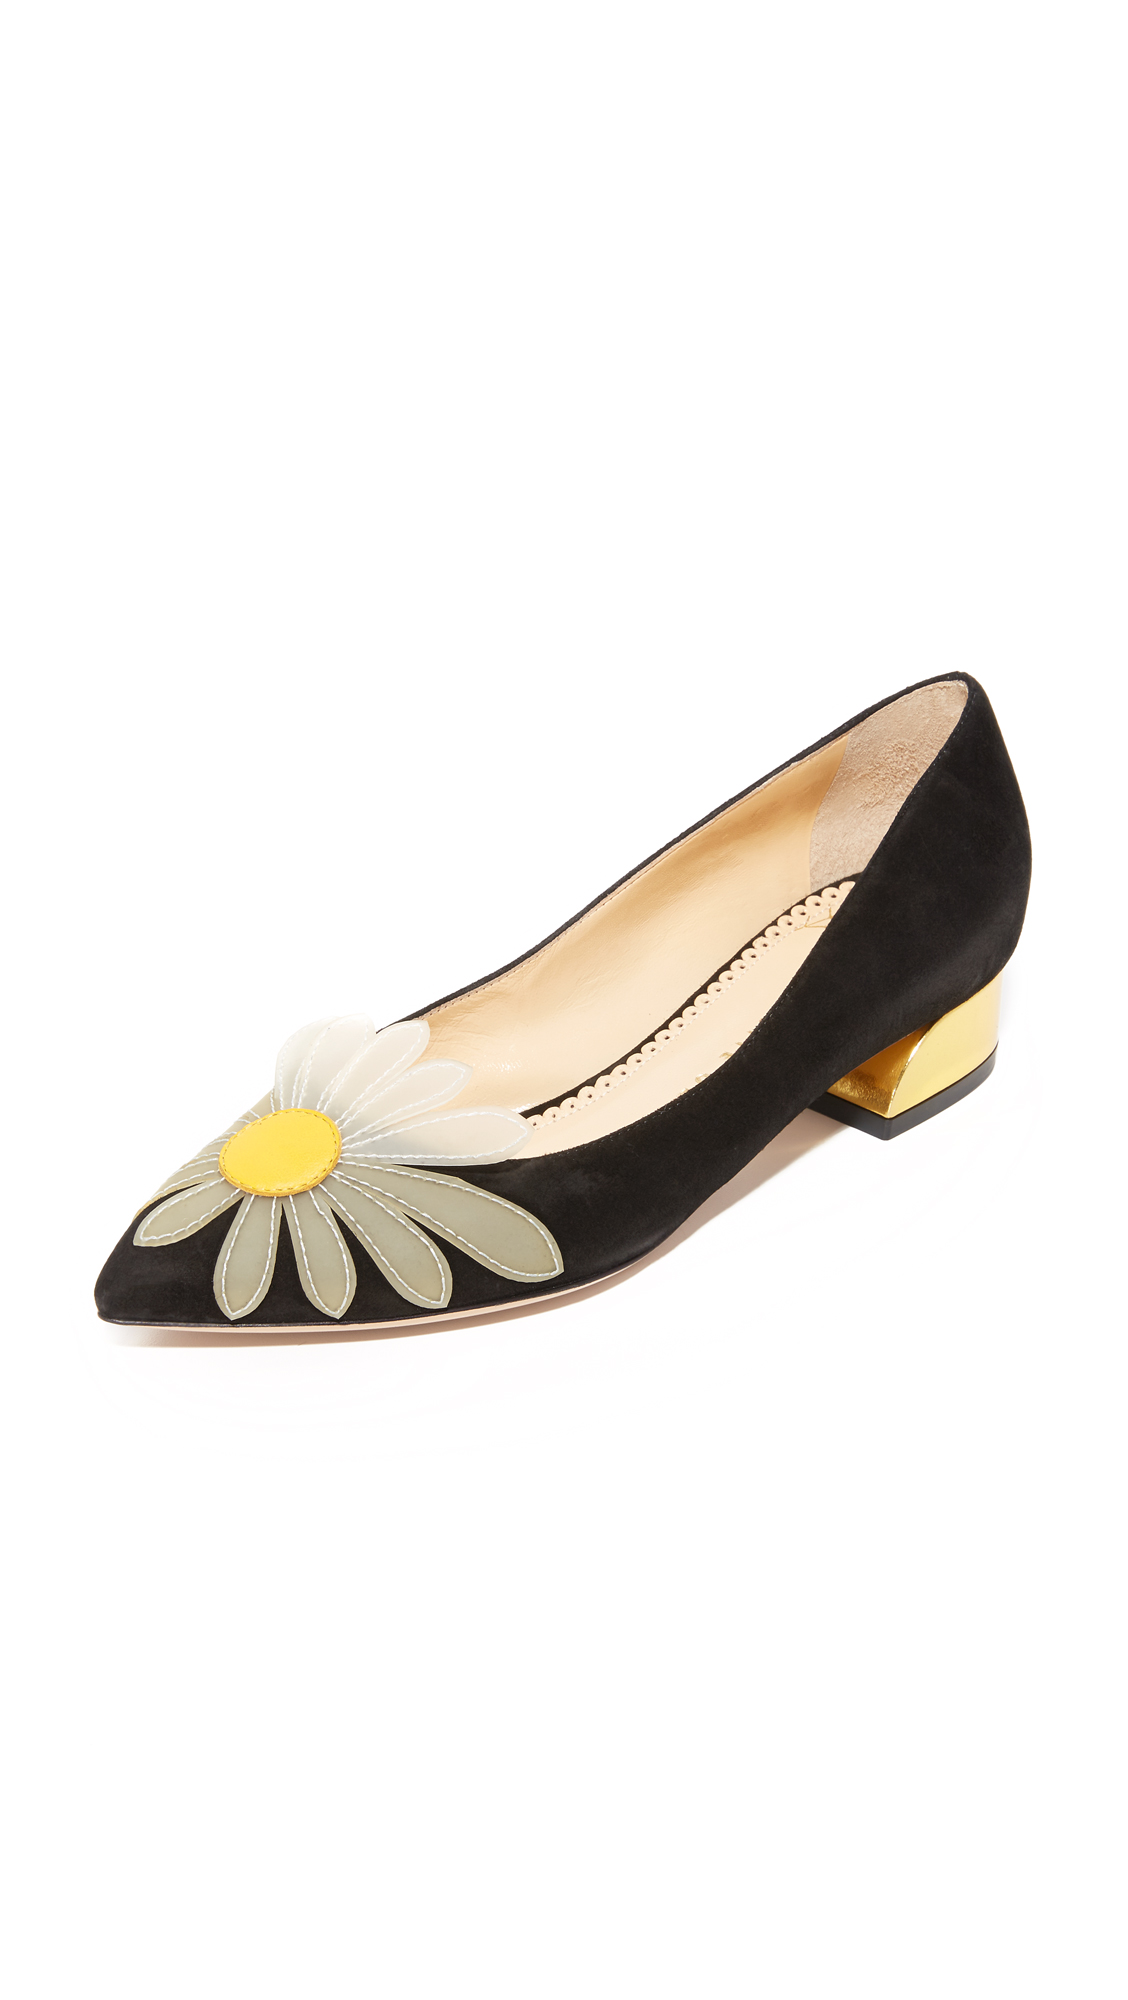 Charlotte Olympia Aster Daisy Court Shoes - Black/White/Sunshine Yellow at Shopbop